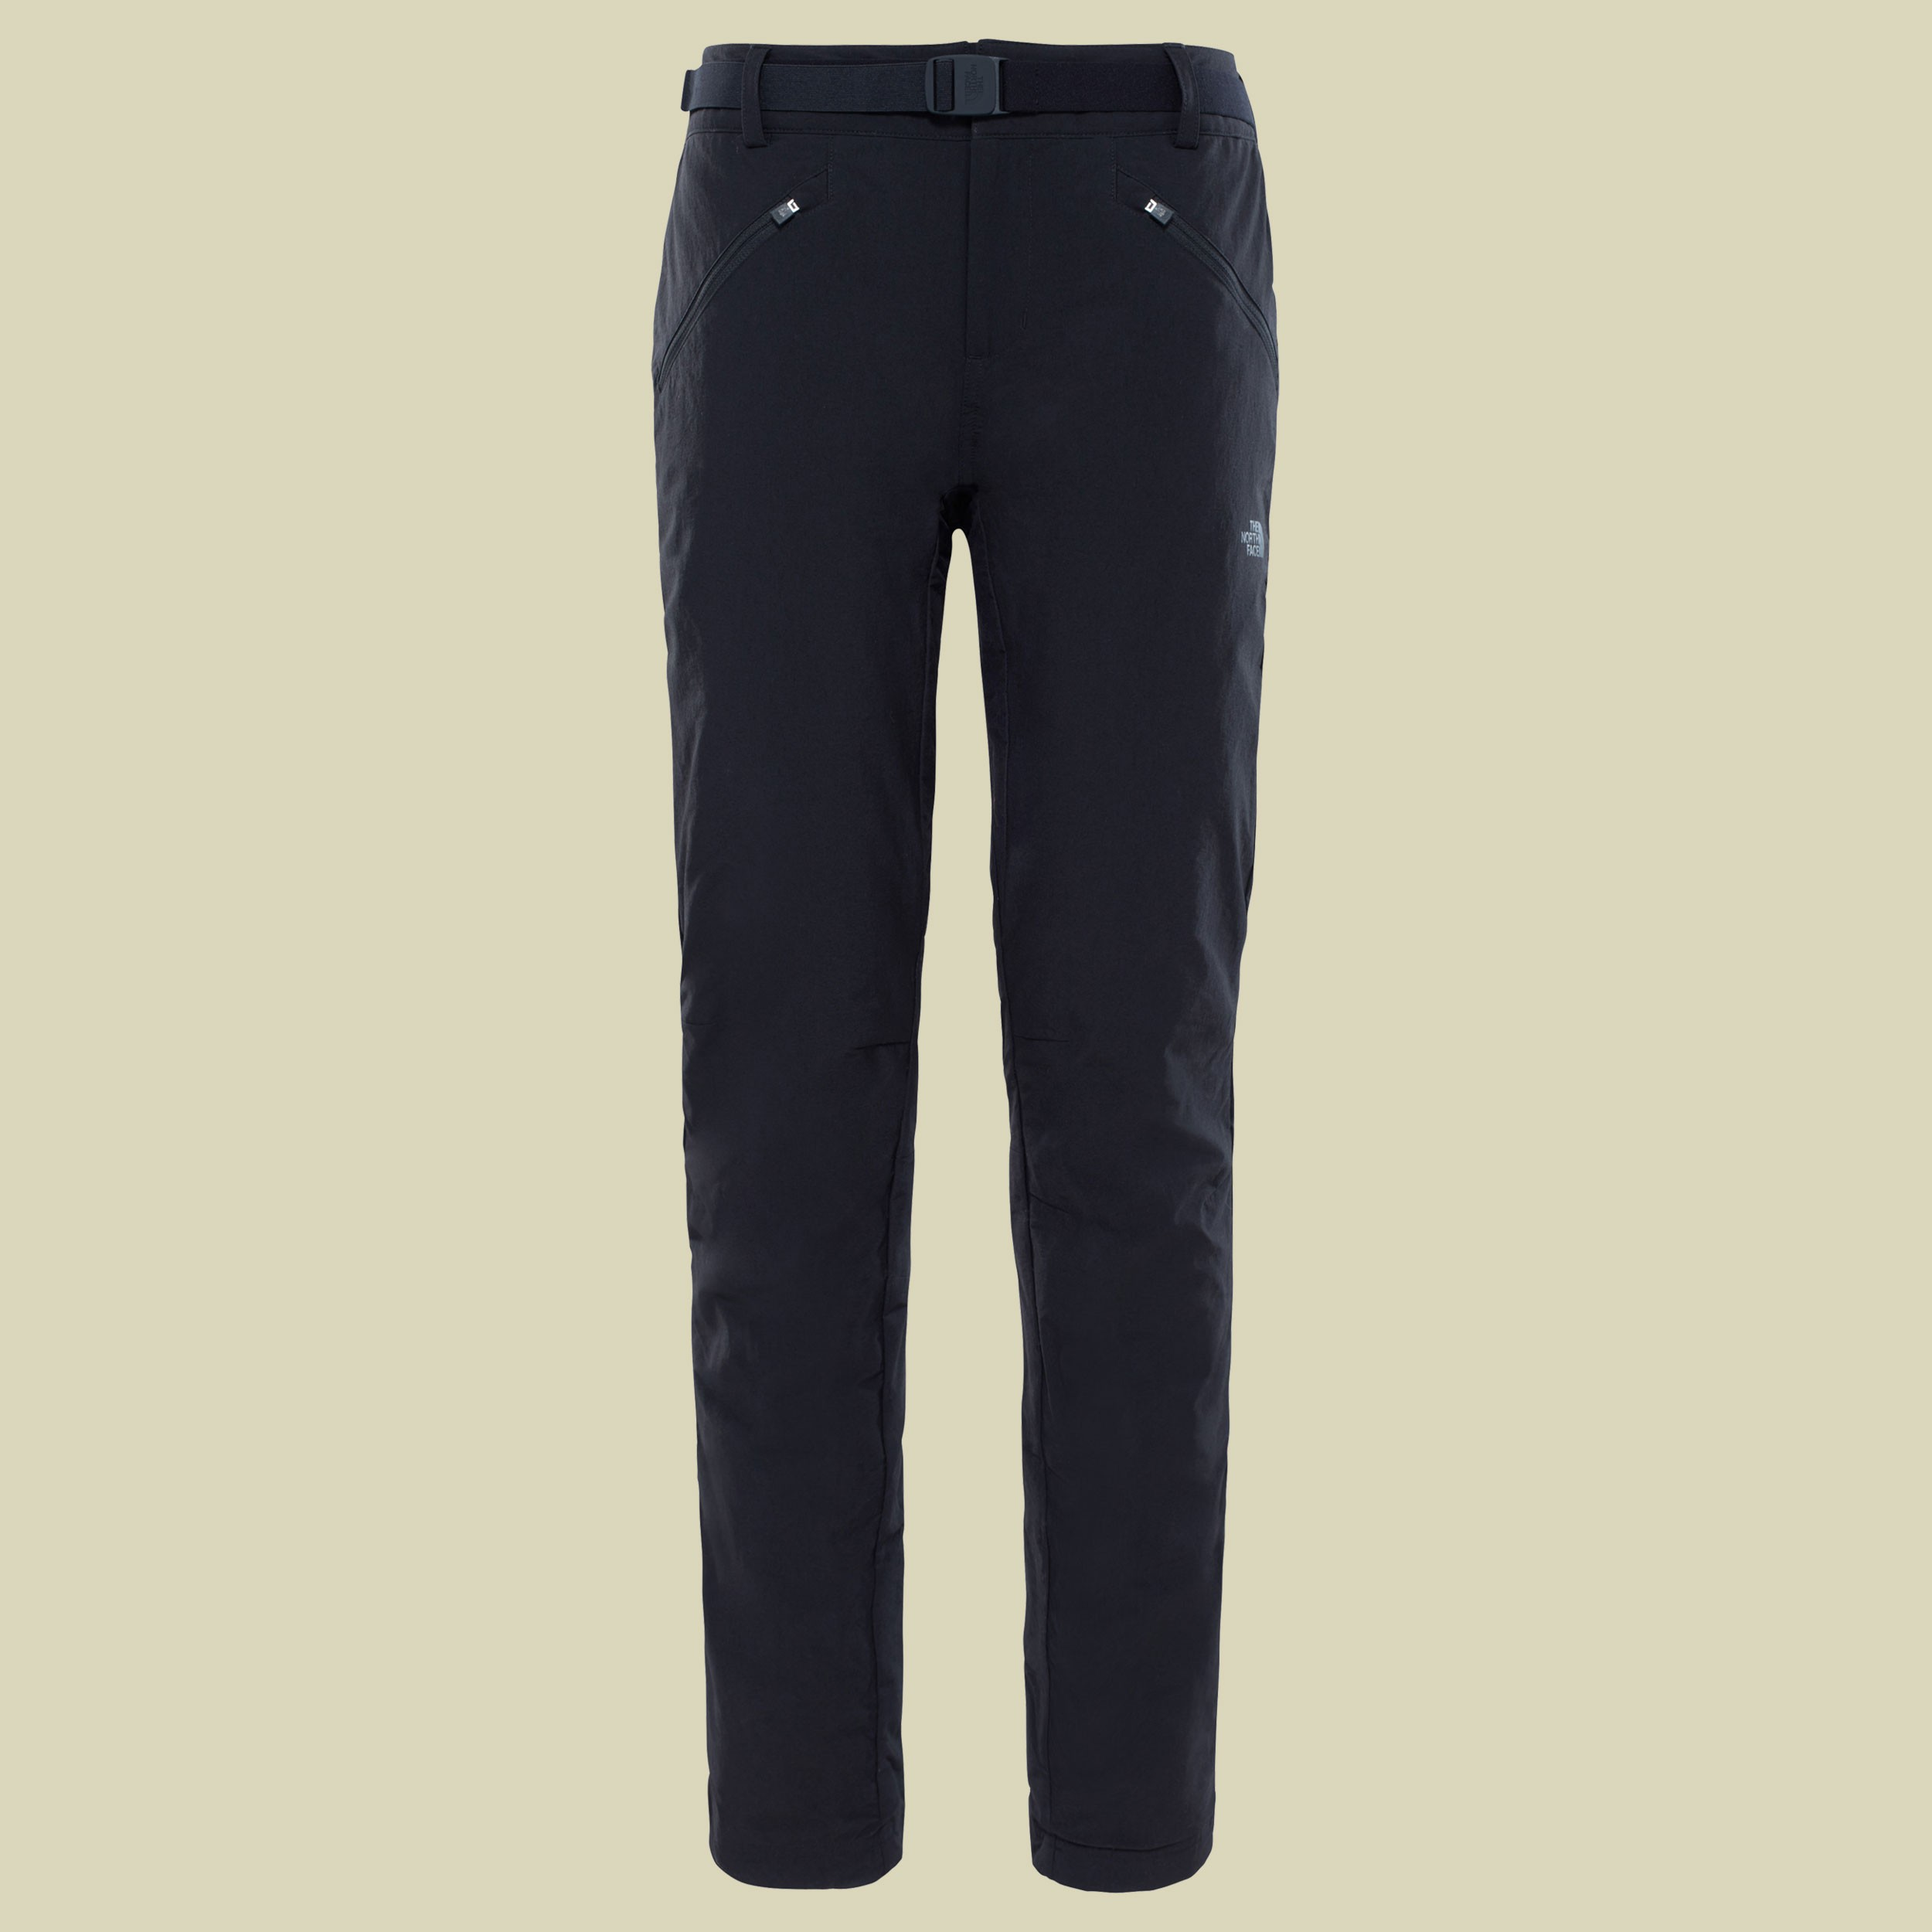 Exploration Insulated Pant Women